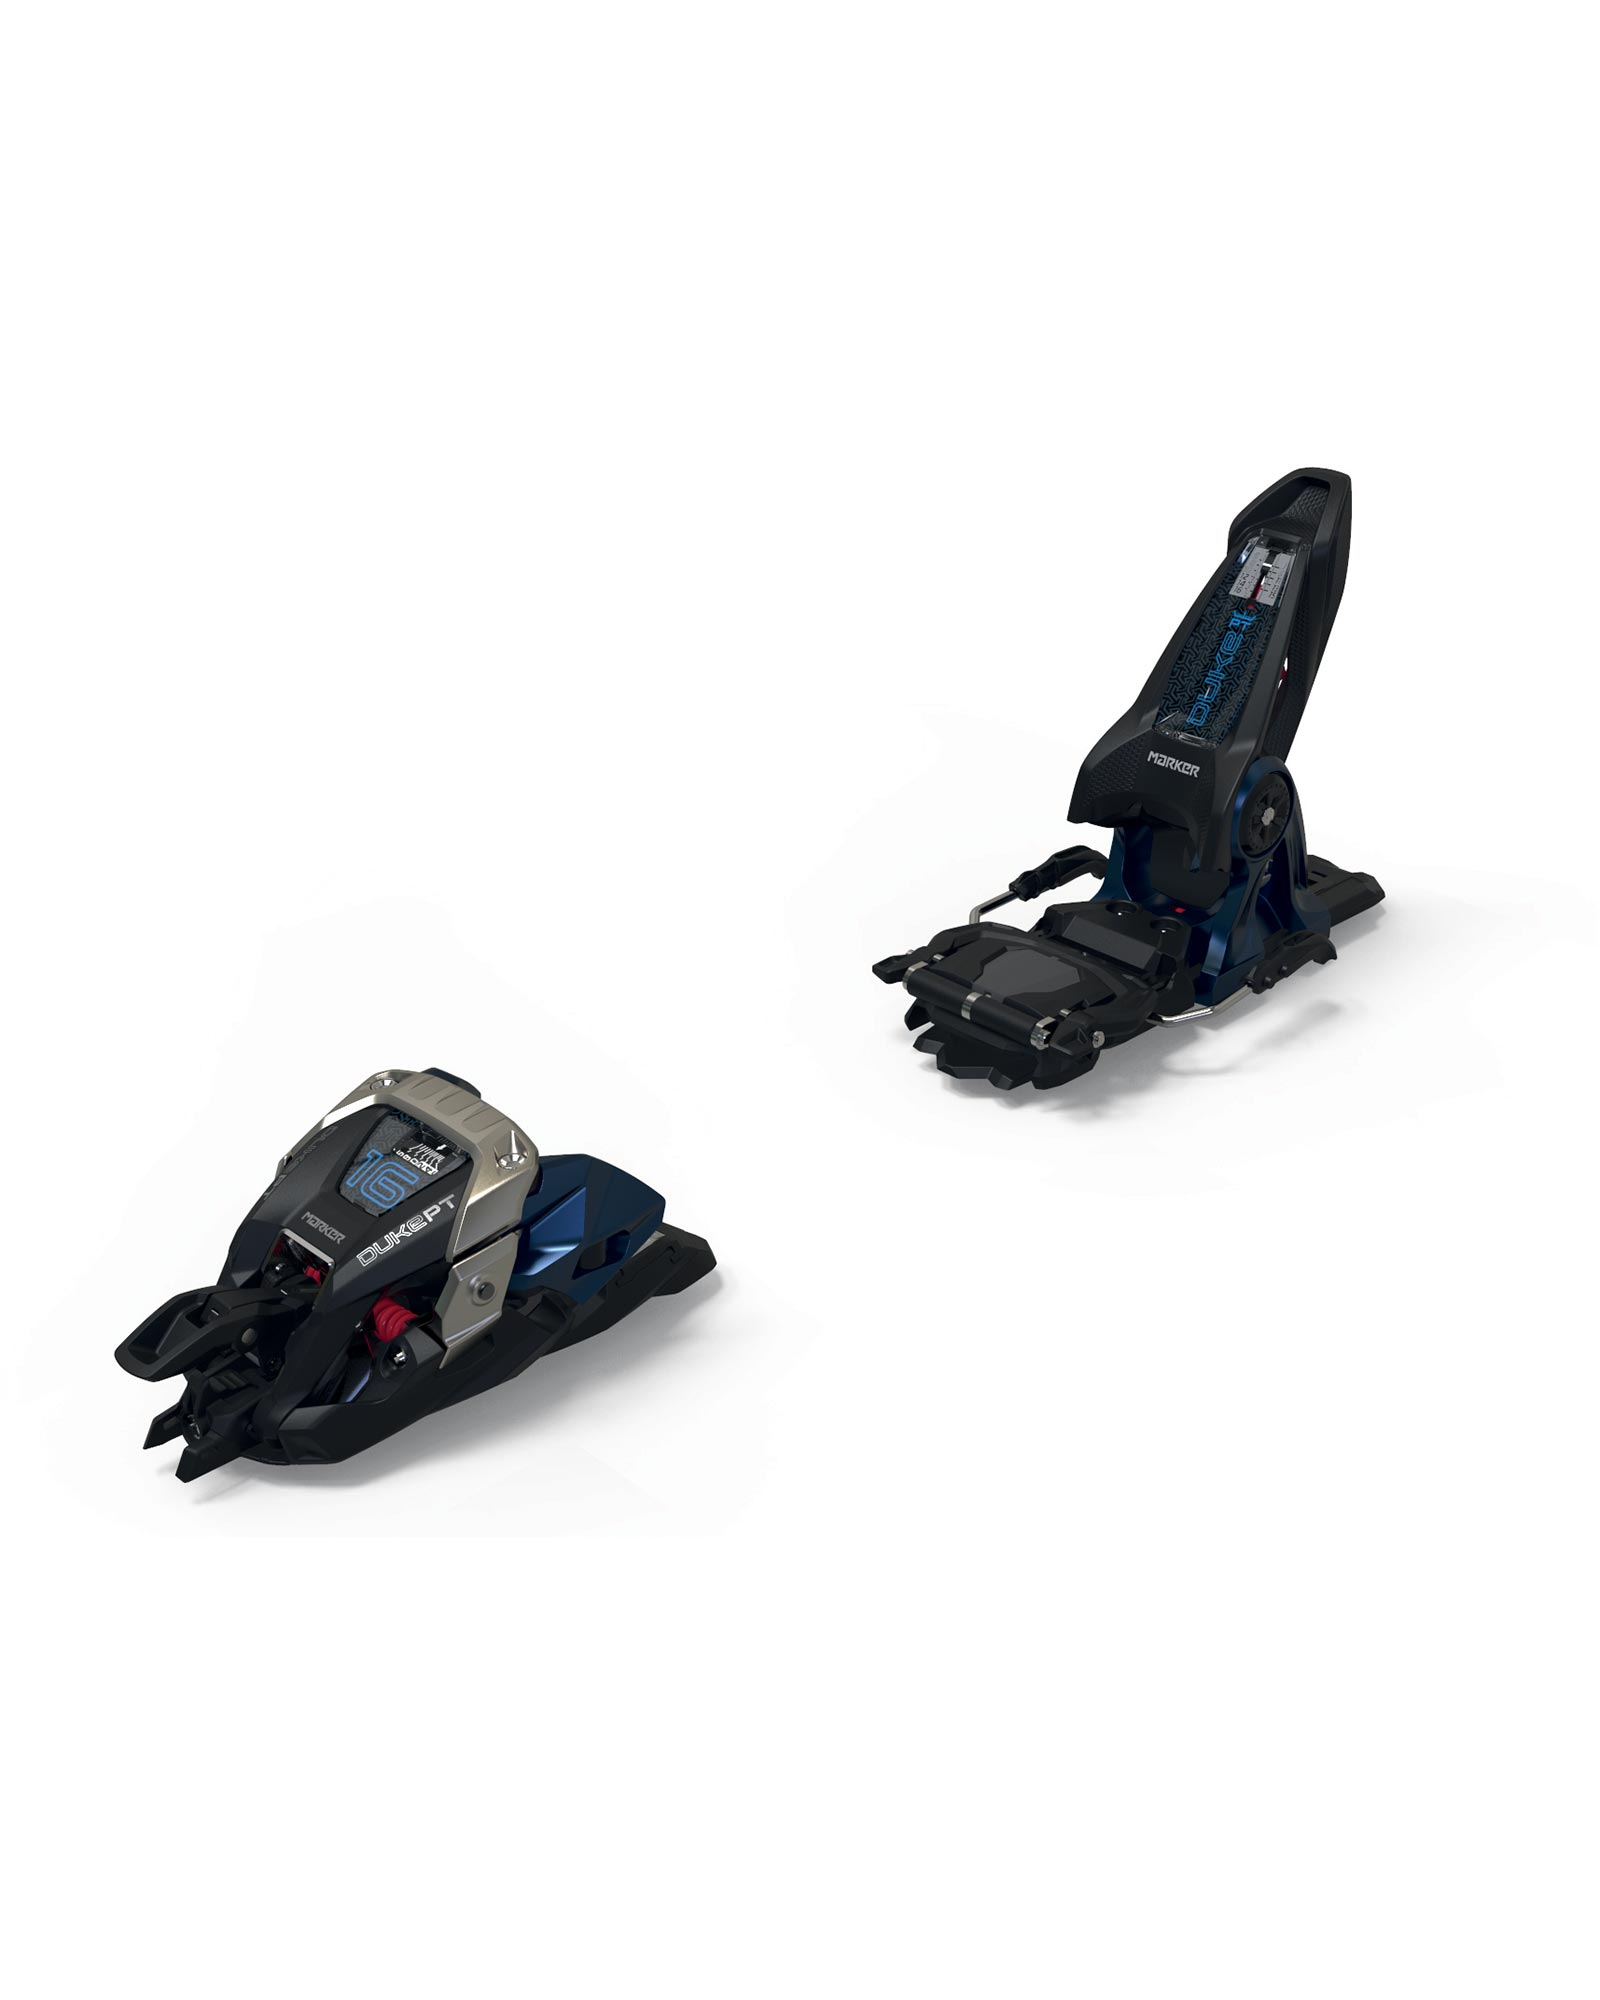 Marker Duke PT 16 125mm Backcountry Ski Bindings 2020 / 2021 0